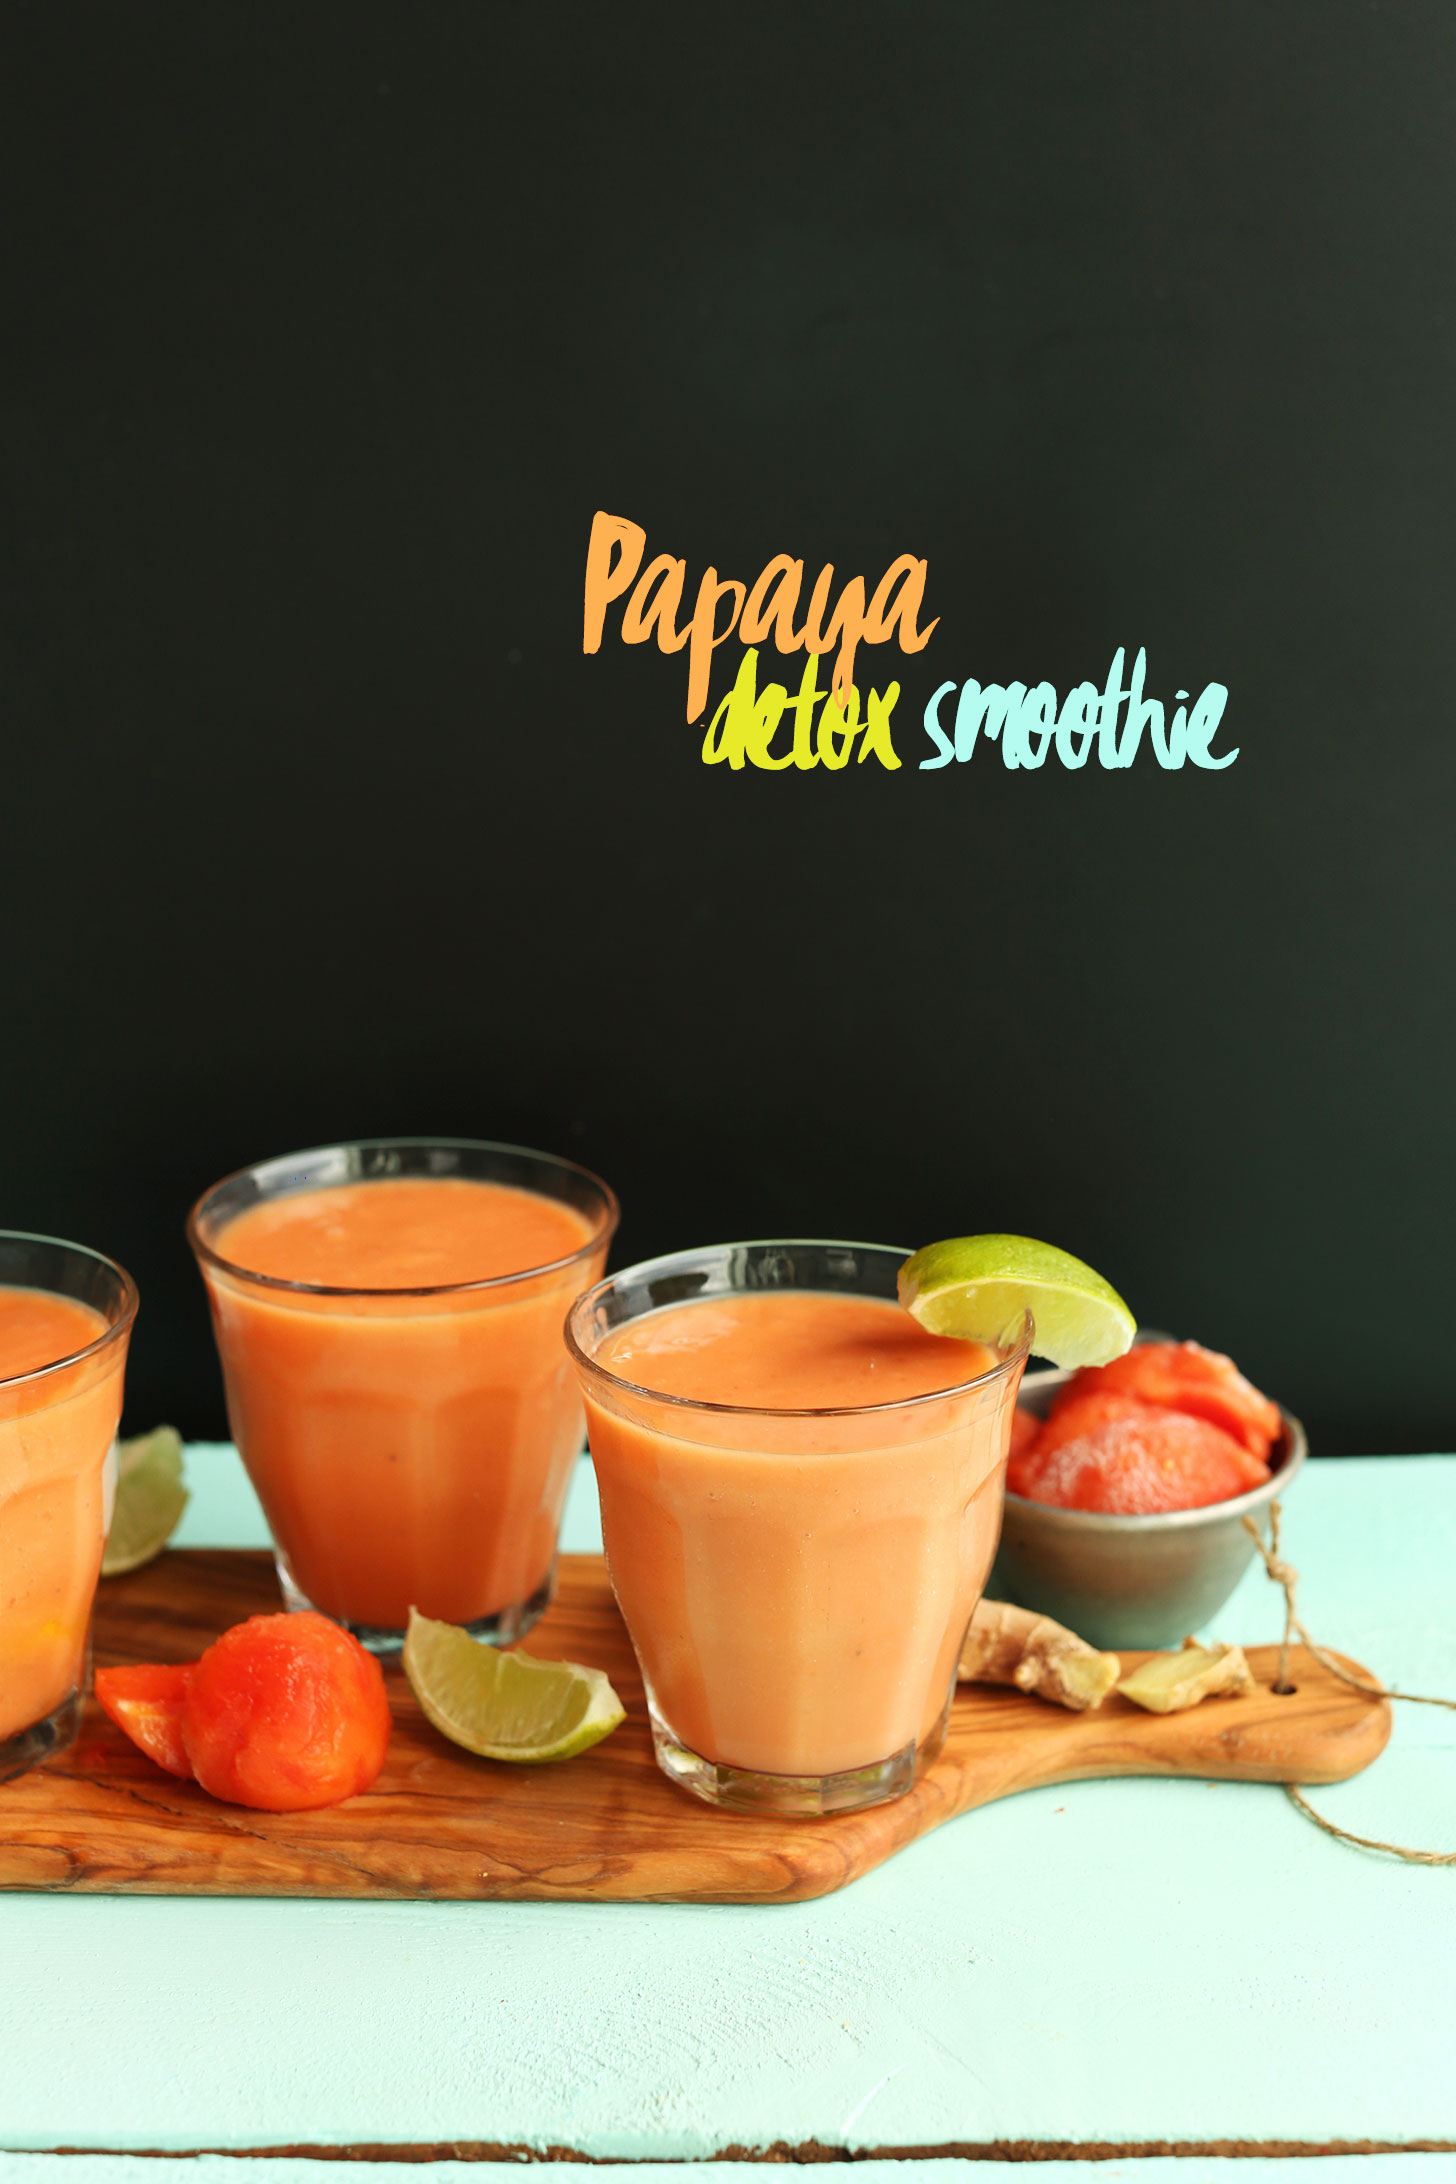 Glasses of our naturally-sweetened vegan Papaya Detox Smoothie